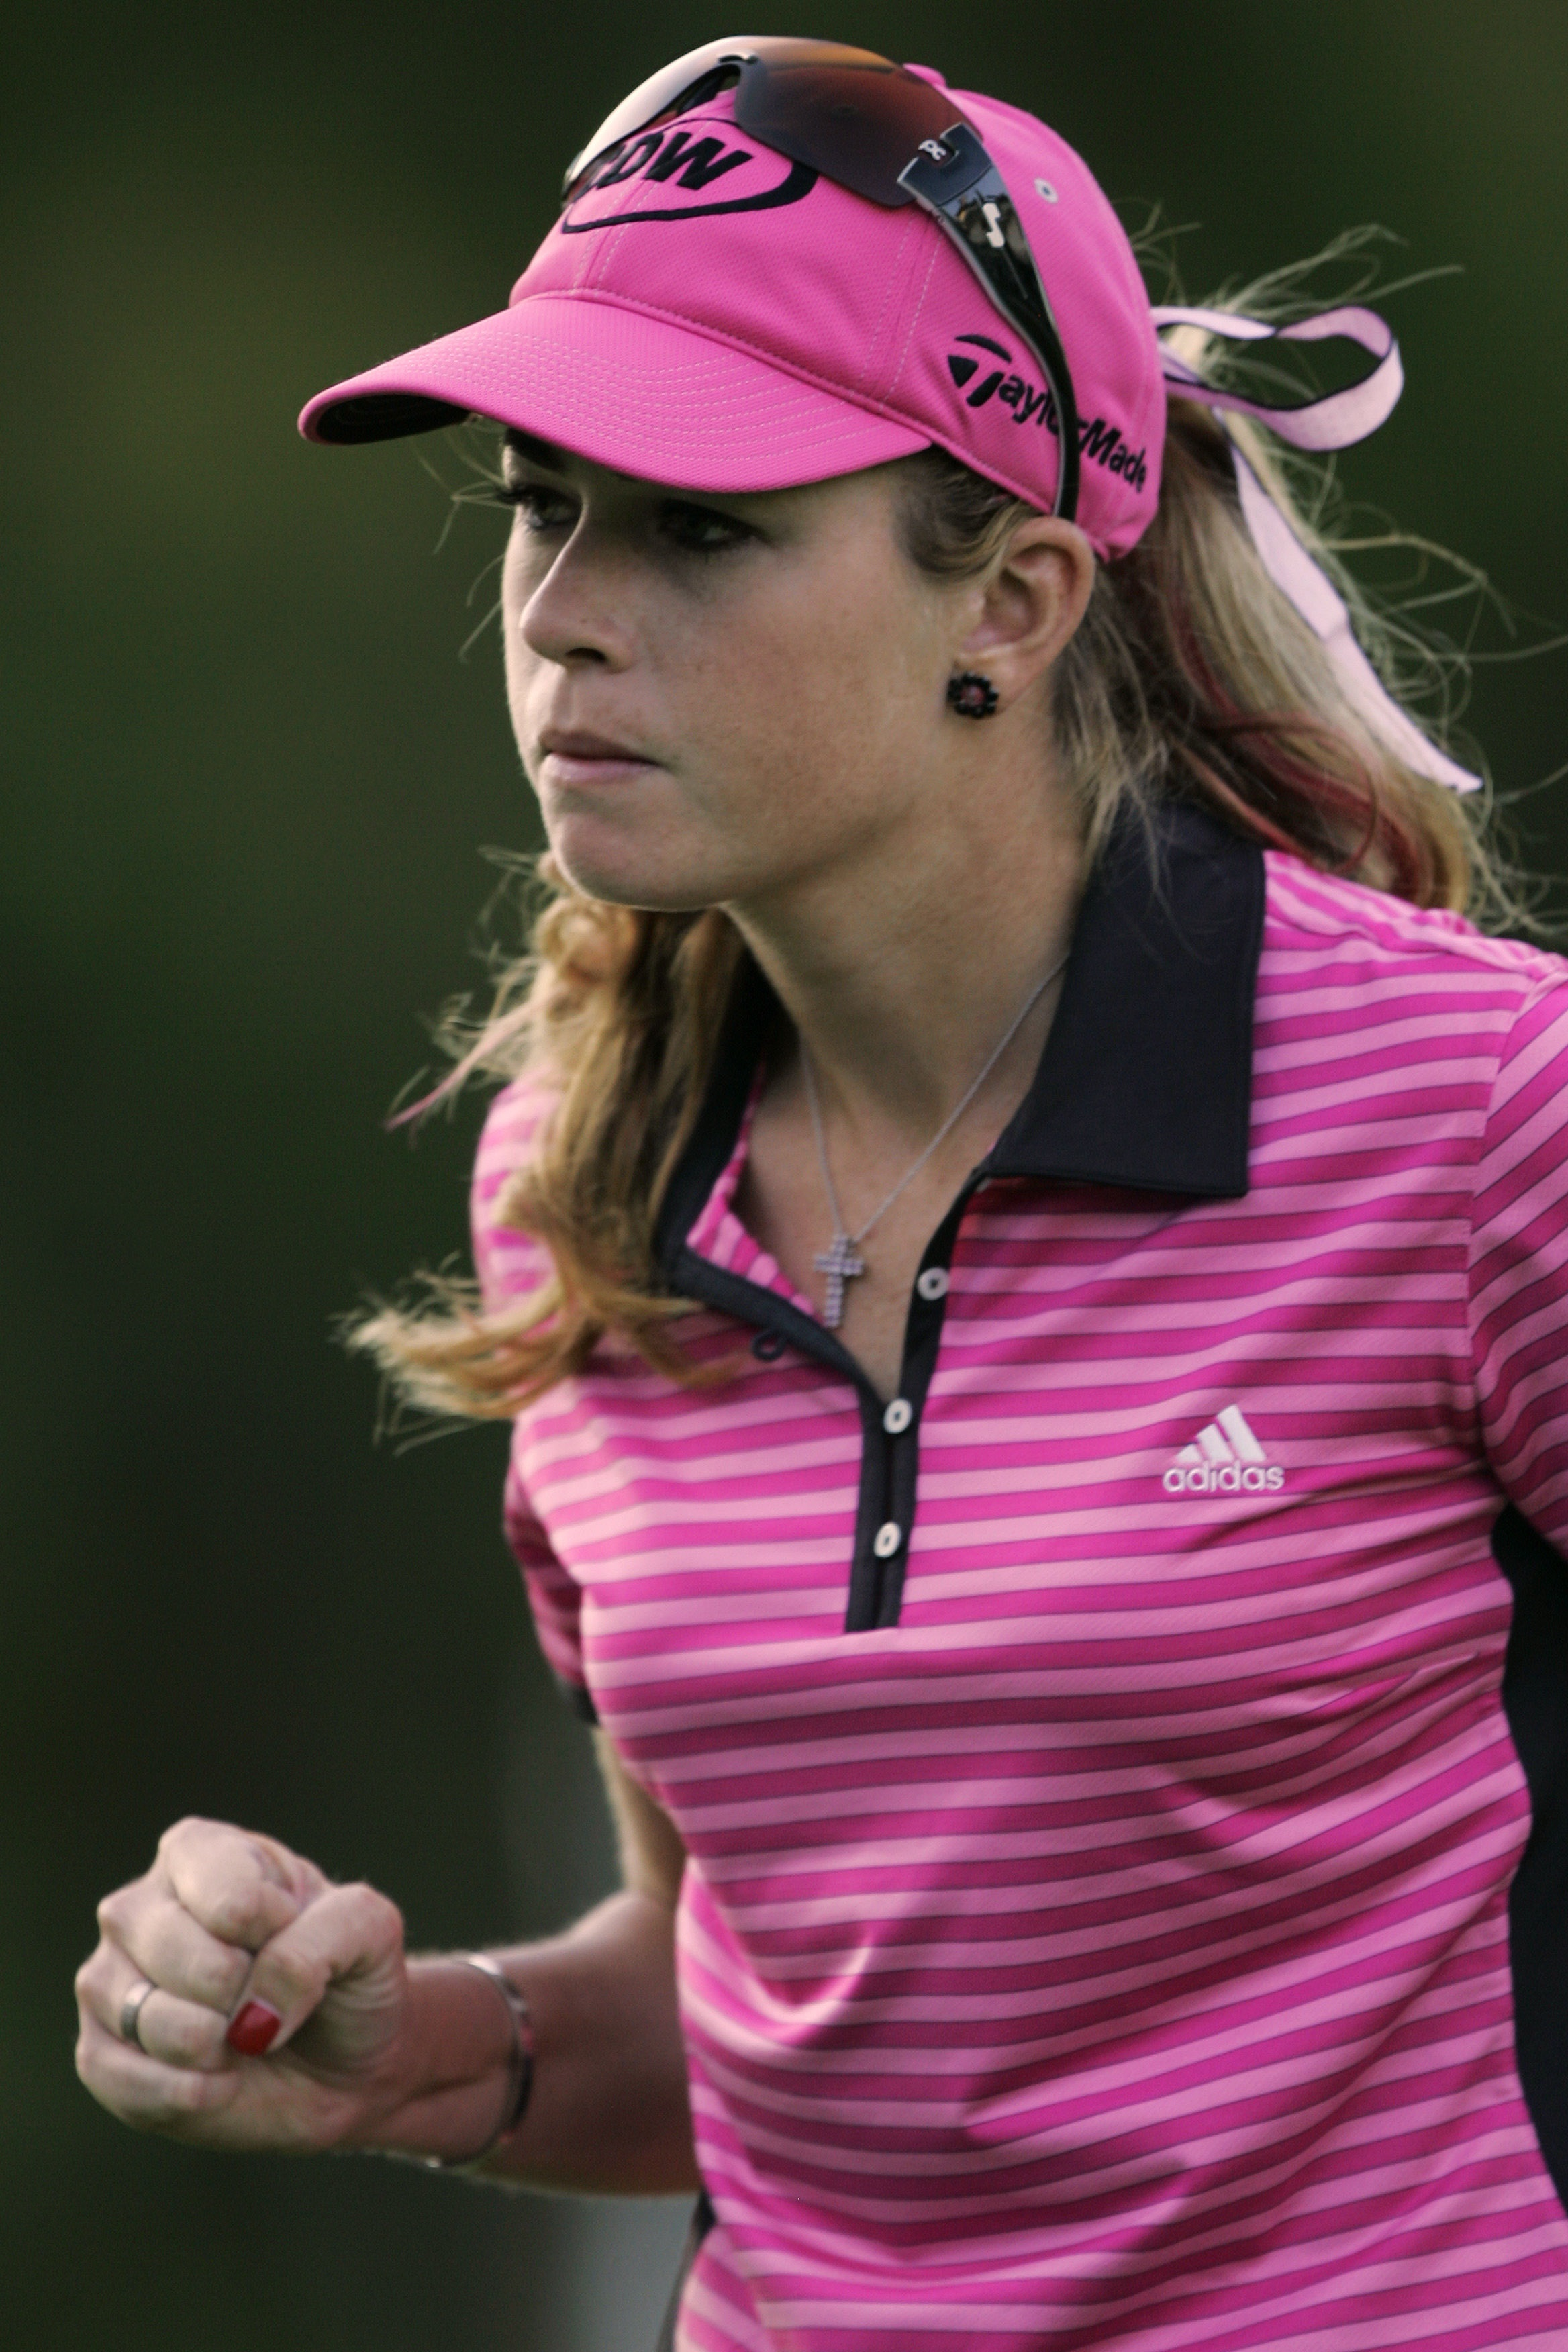 Paula Creamer will be appearing at the Sundog, Bridgestone and LPGA booths on Friday.